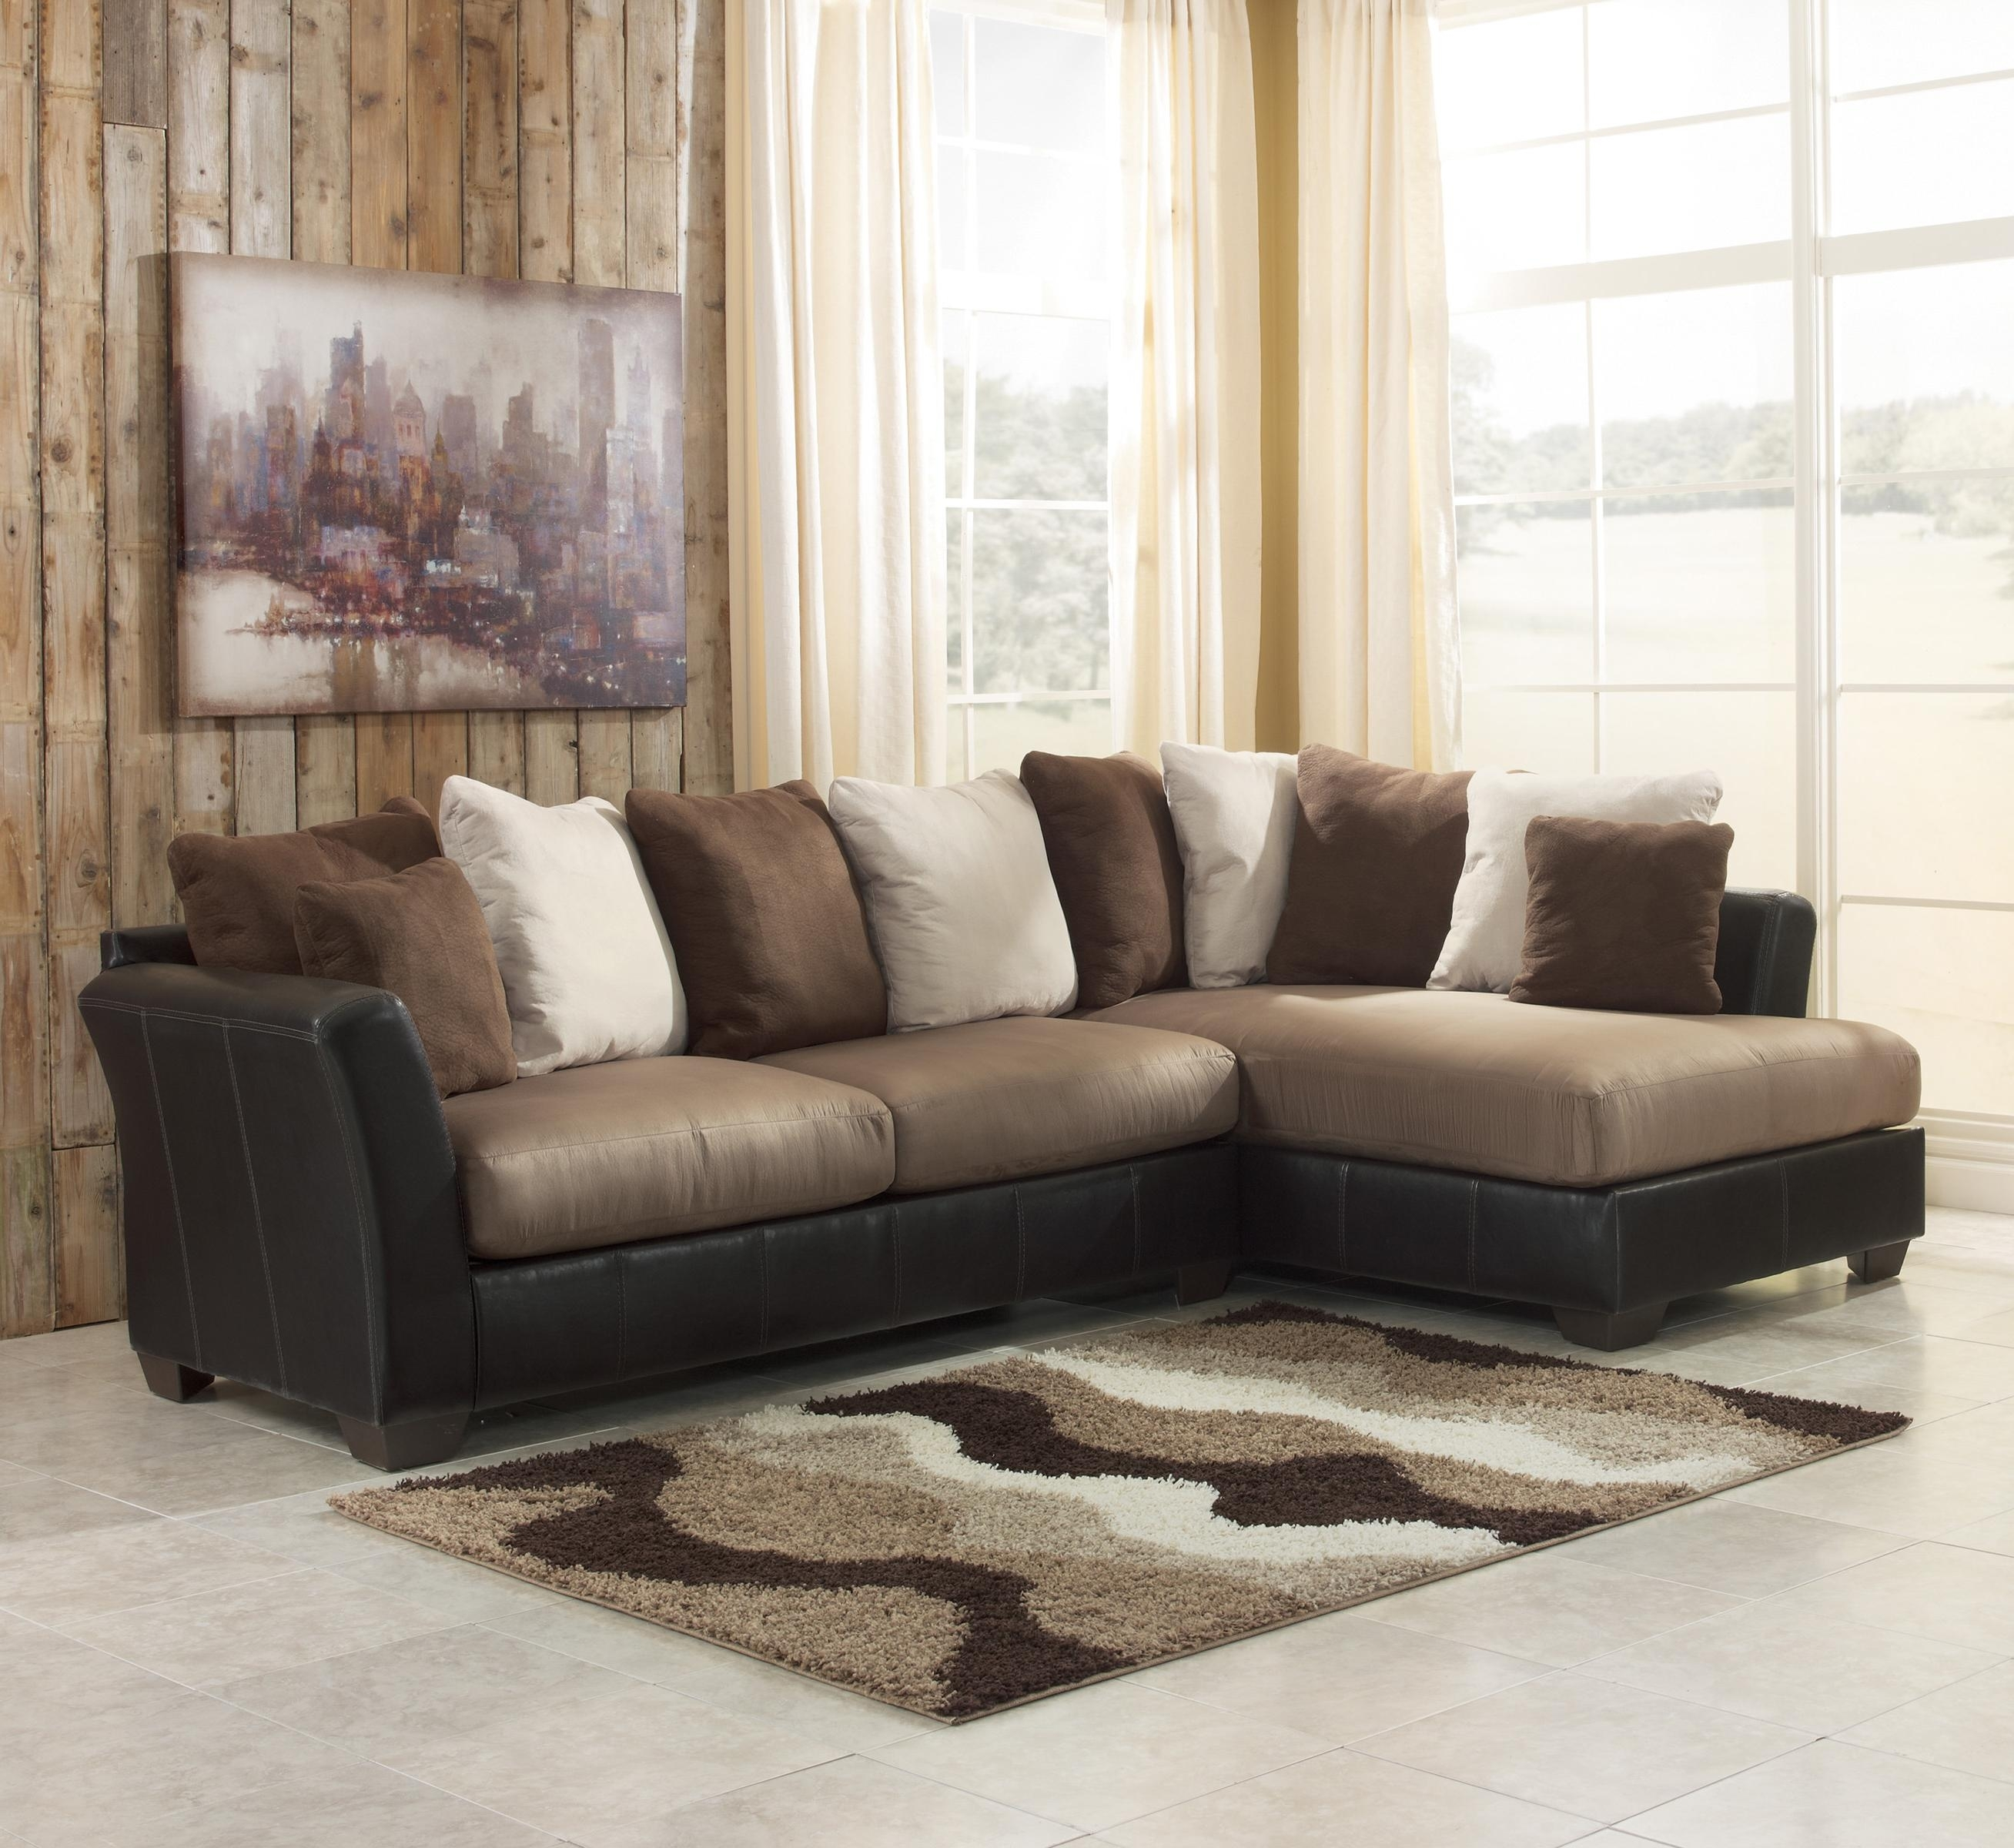 10 Top Sacramento Sectional Sofas Sofa Ideas